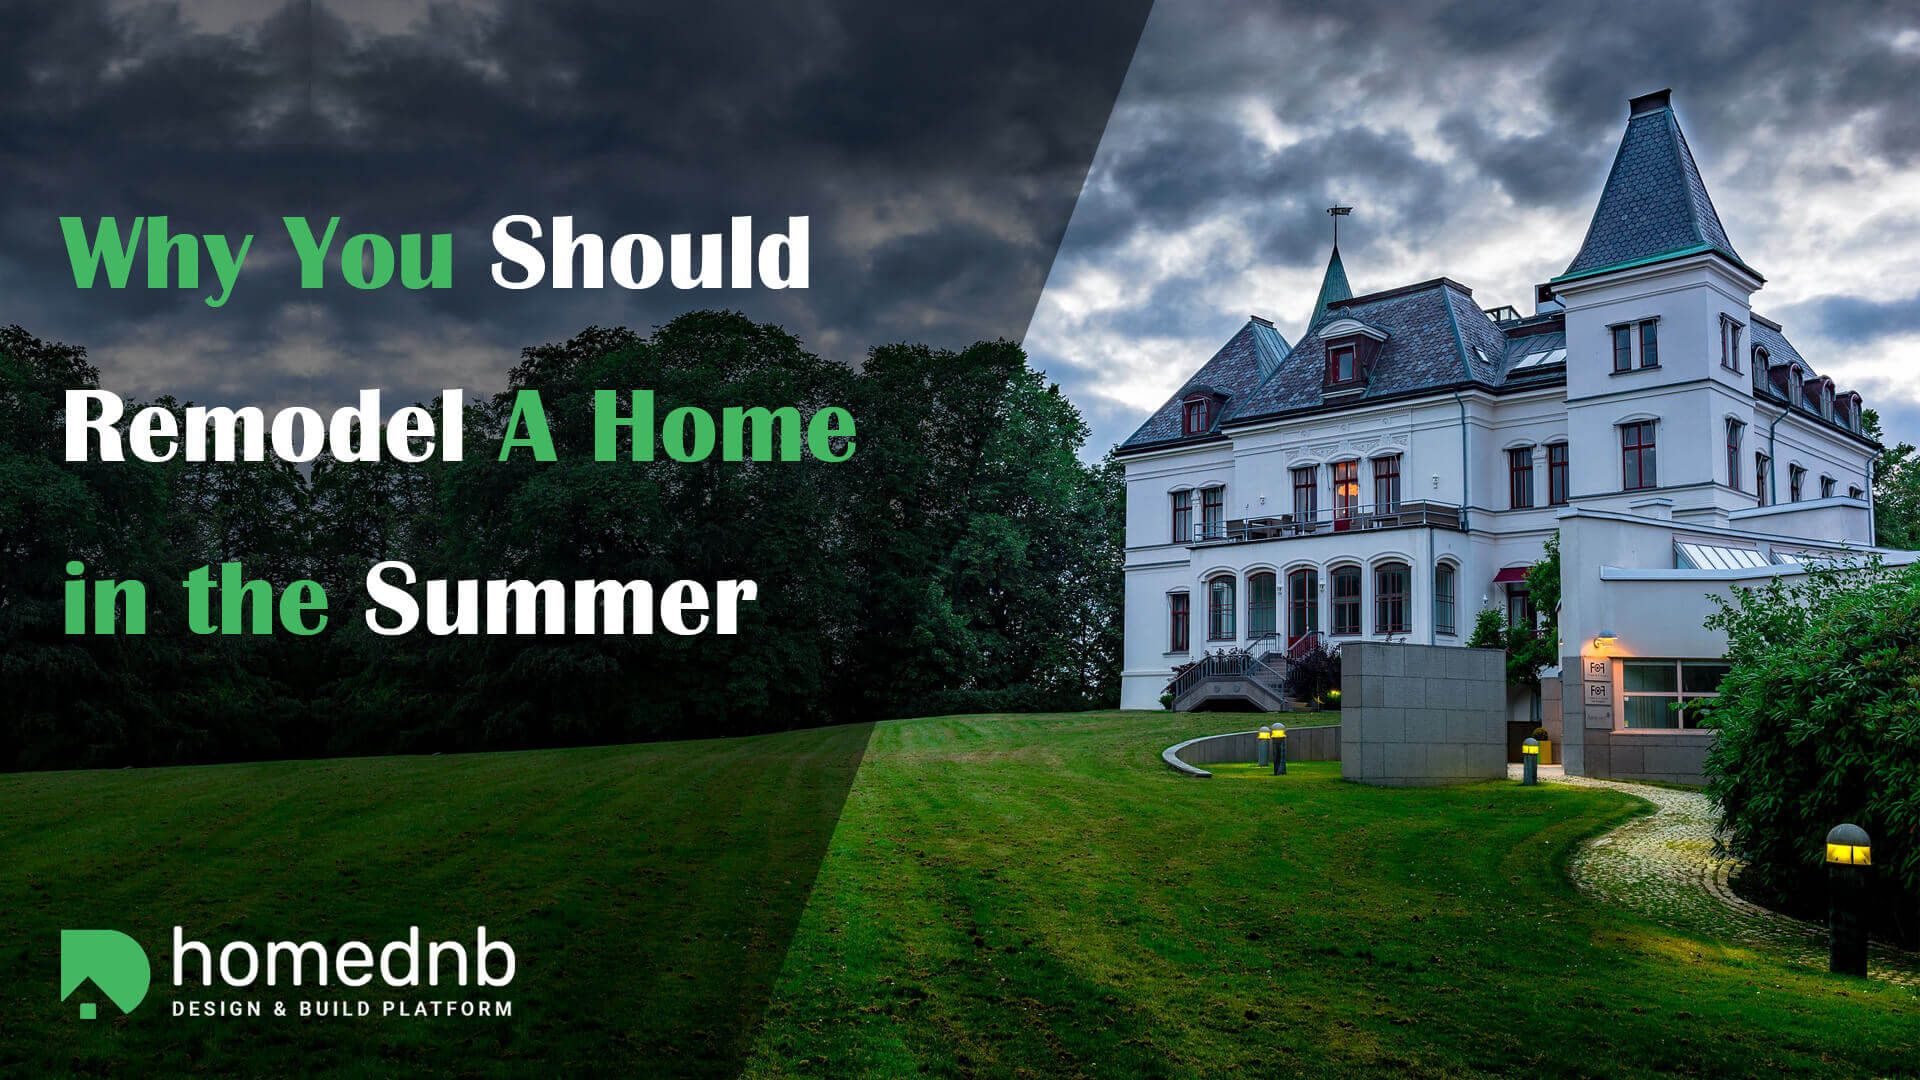 Why You Should Remodel A Home in the Summer